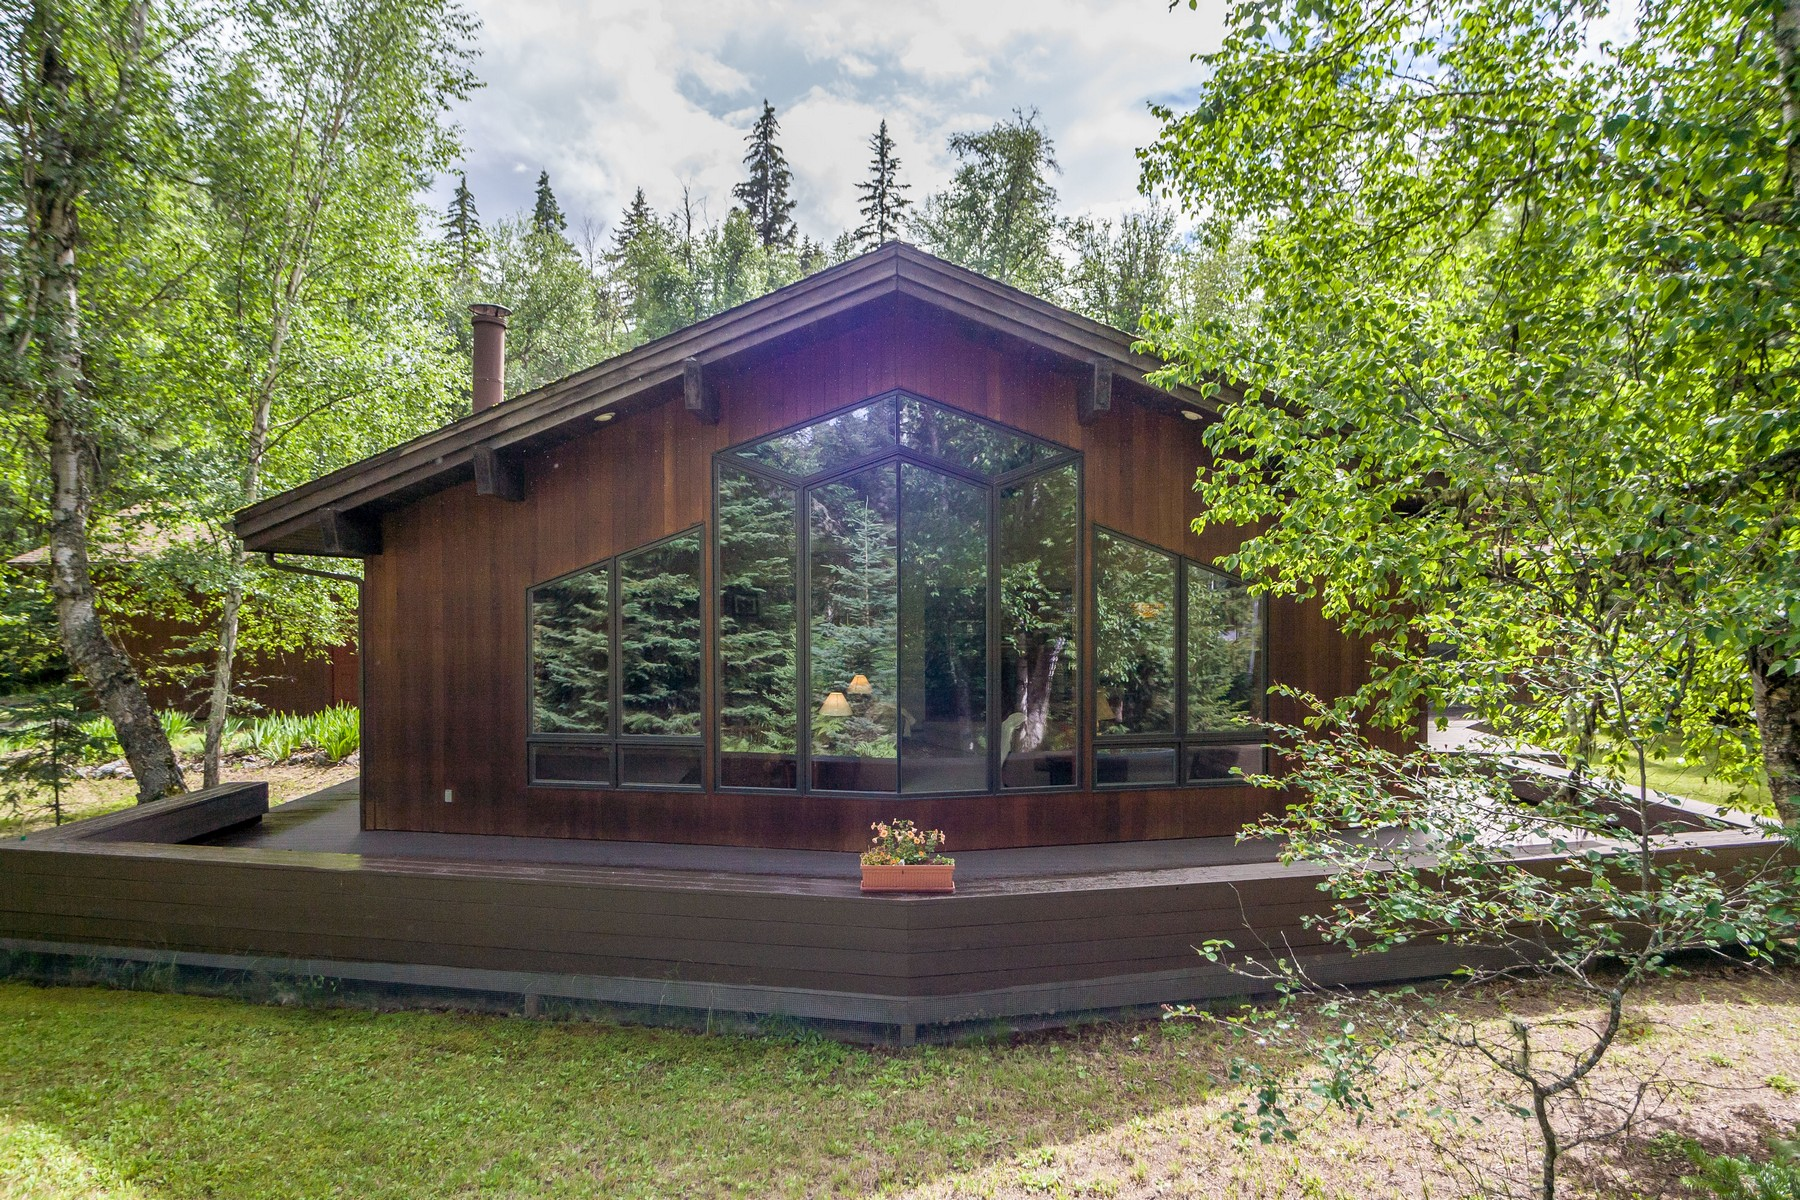 Additional photo for property listing at 970 Swan Horseshoe Rd , Bigfork, MT 59911 970  Swan Horseshoe Rd Bigfork, Montana 59911 United States